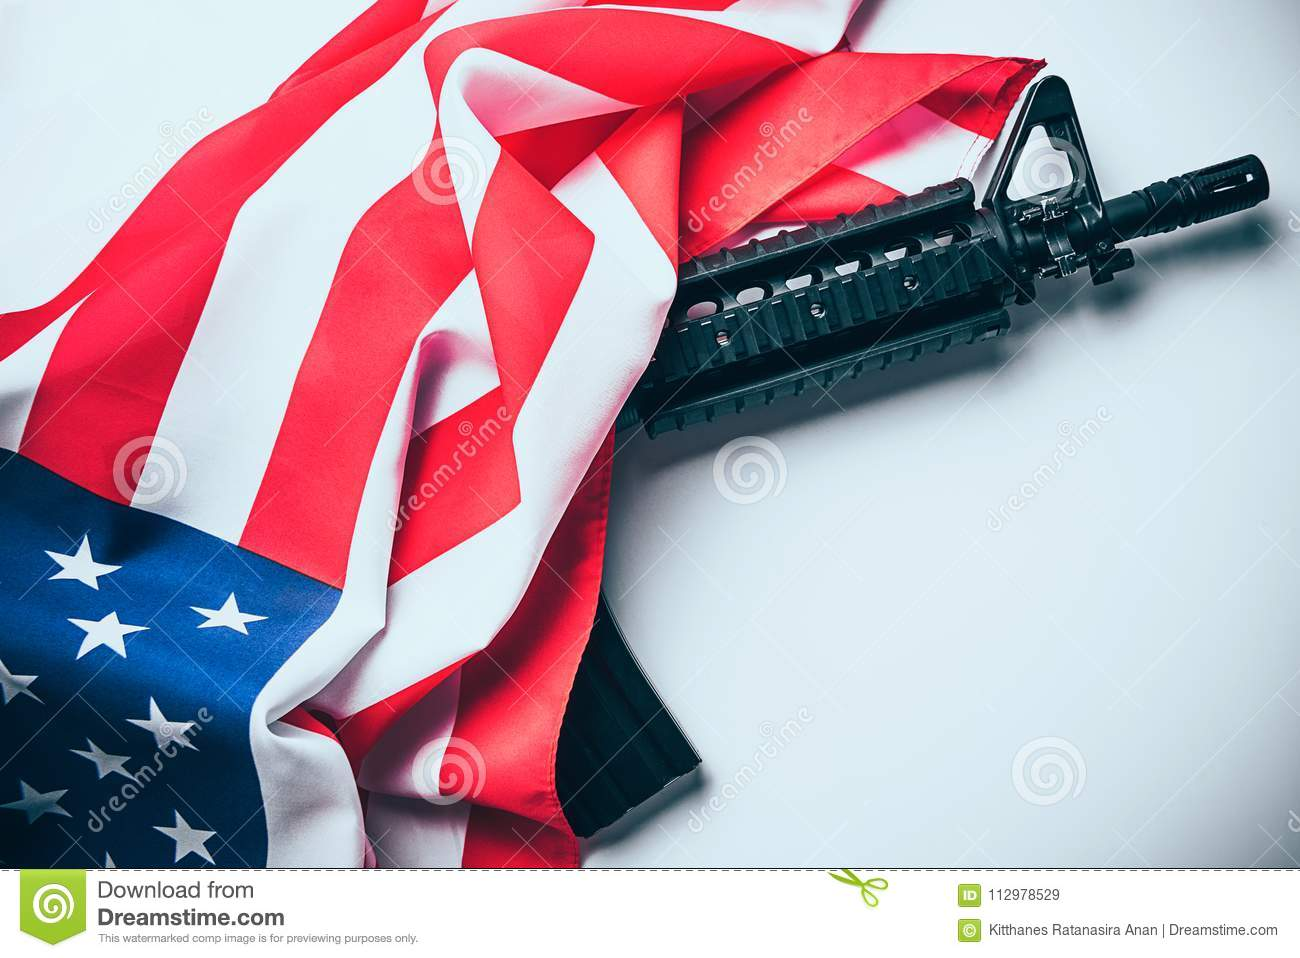 American flag with gun on white background